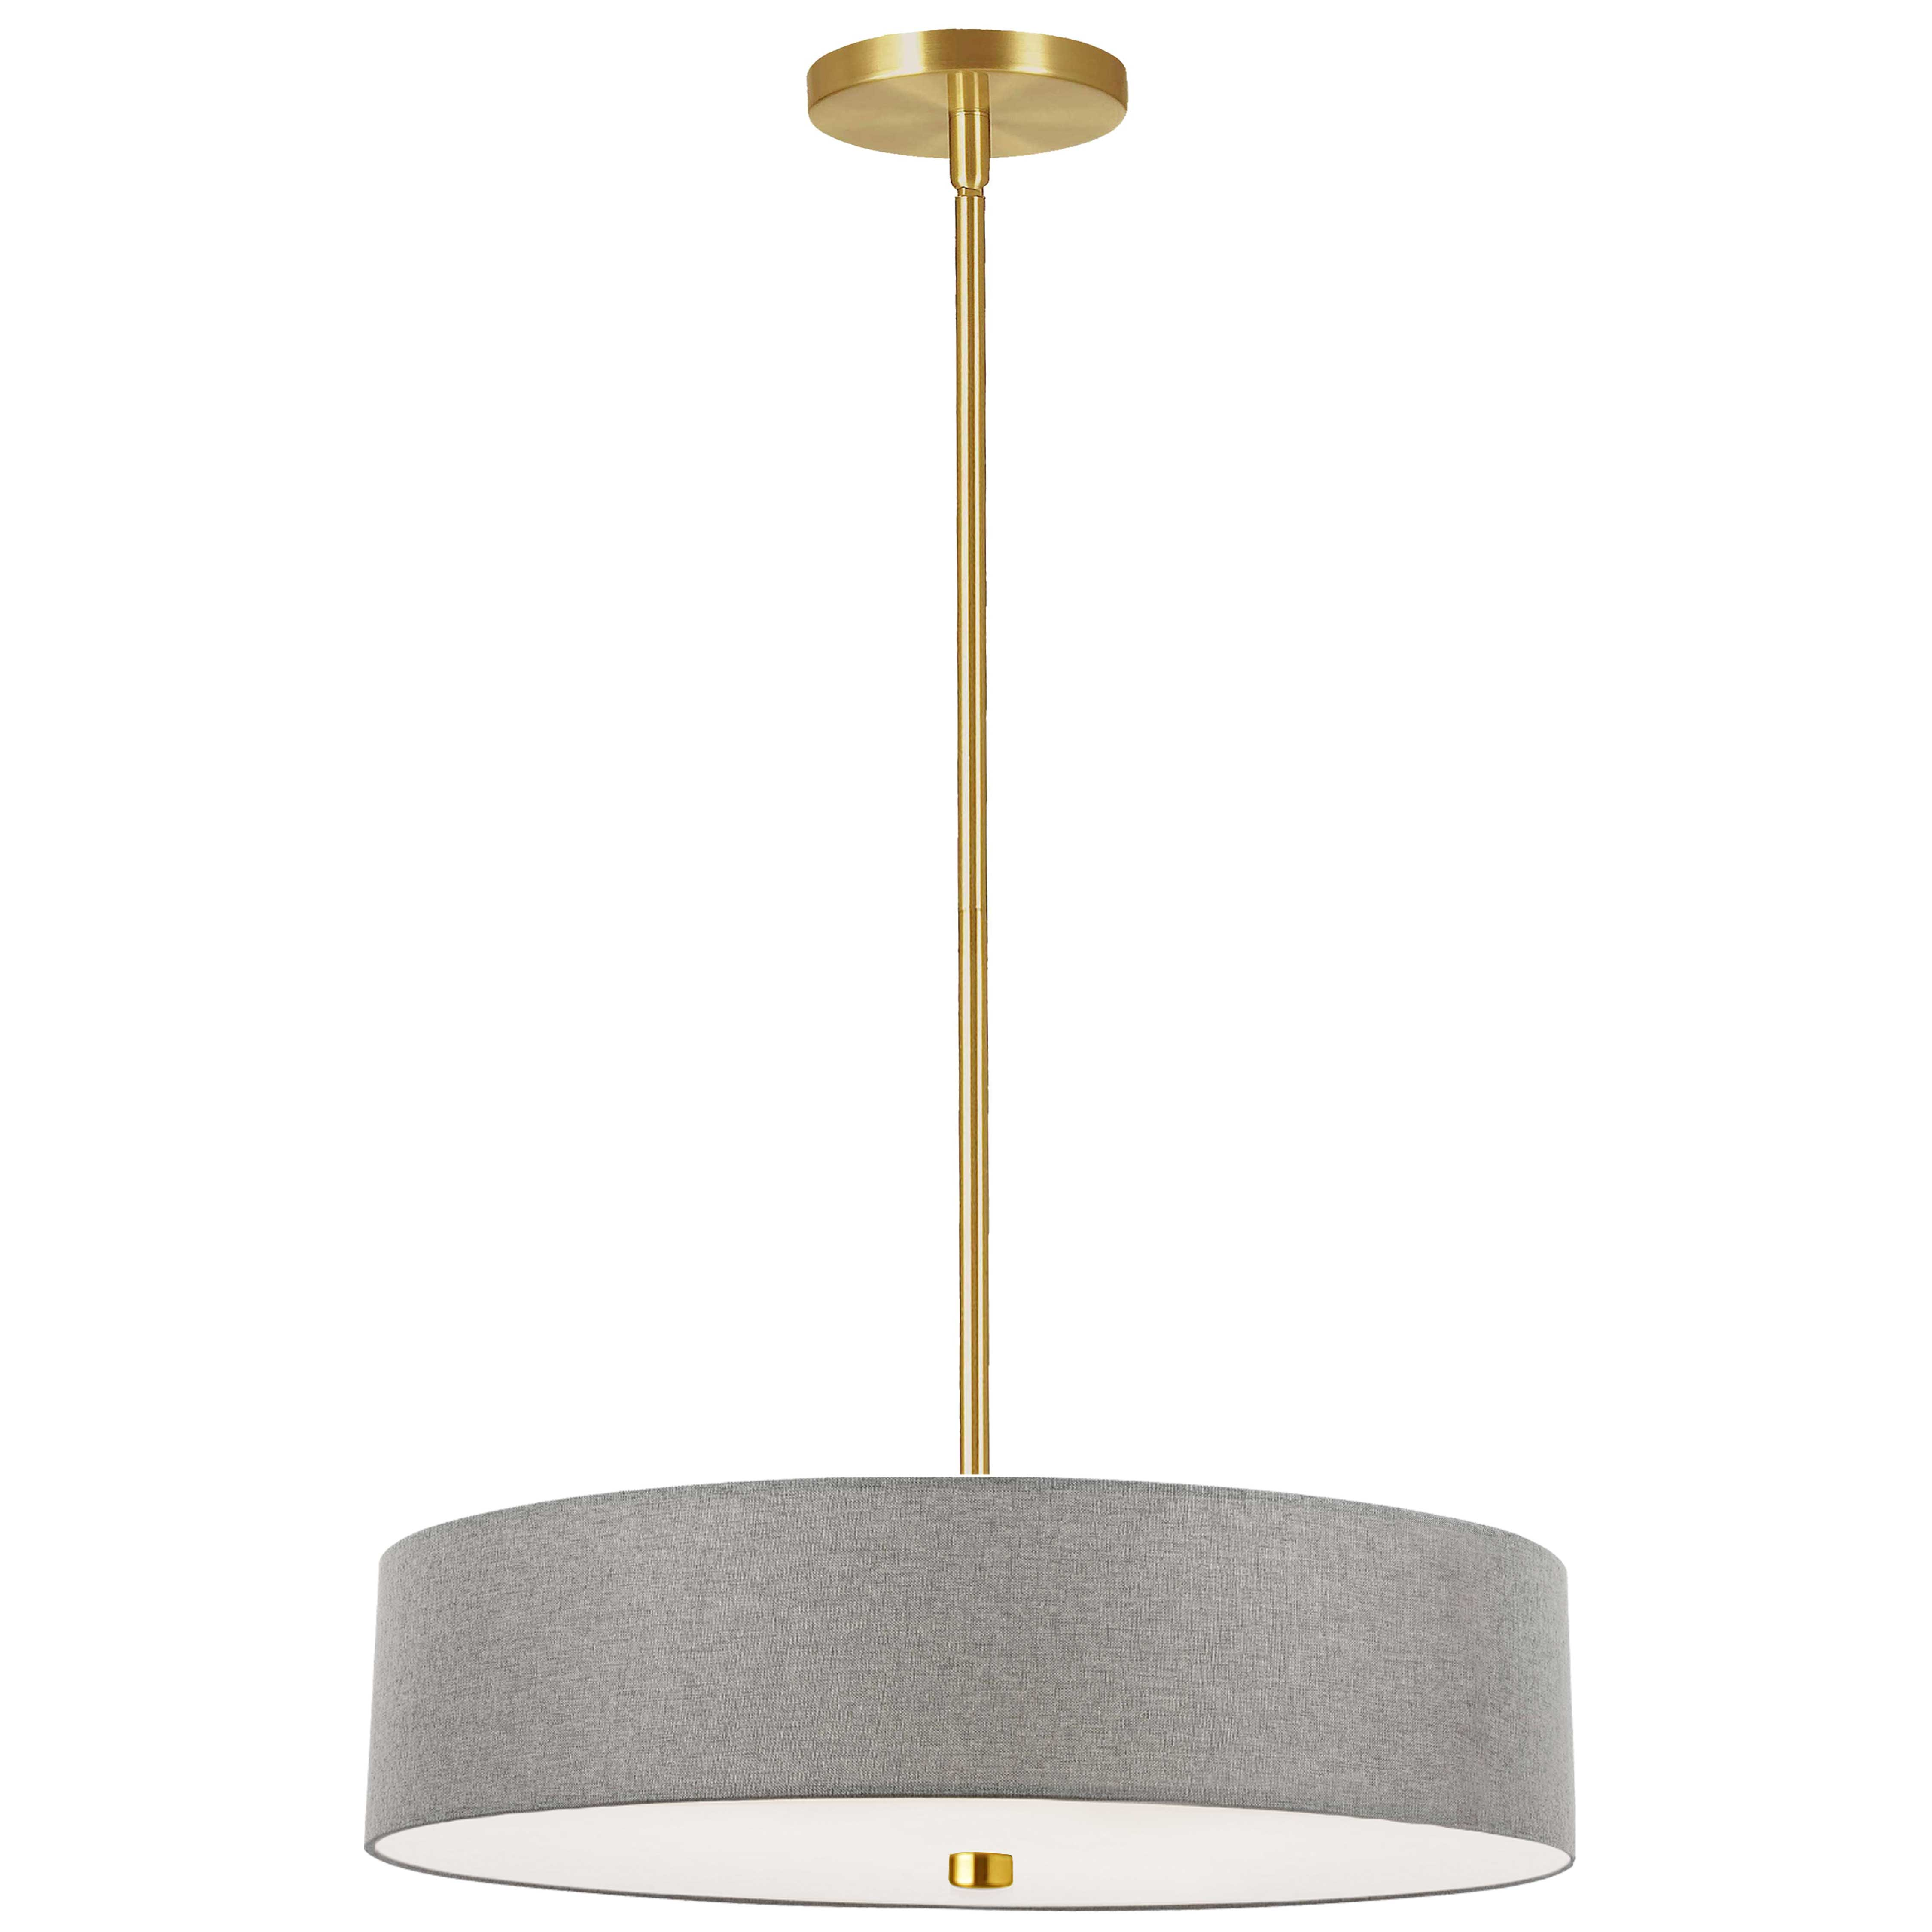 4 Light Incandescent Pendant Aged Brass with Grey Shade